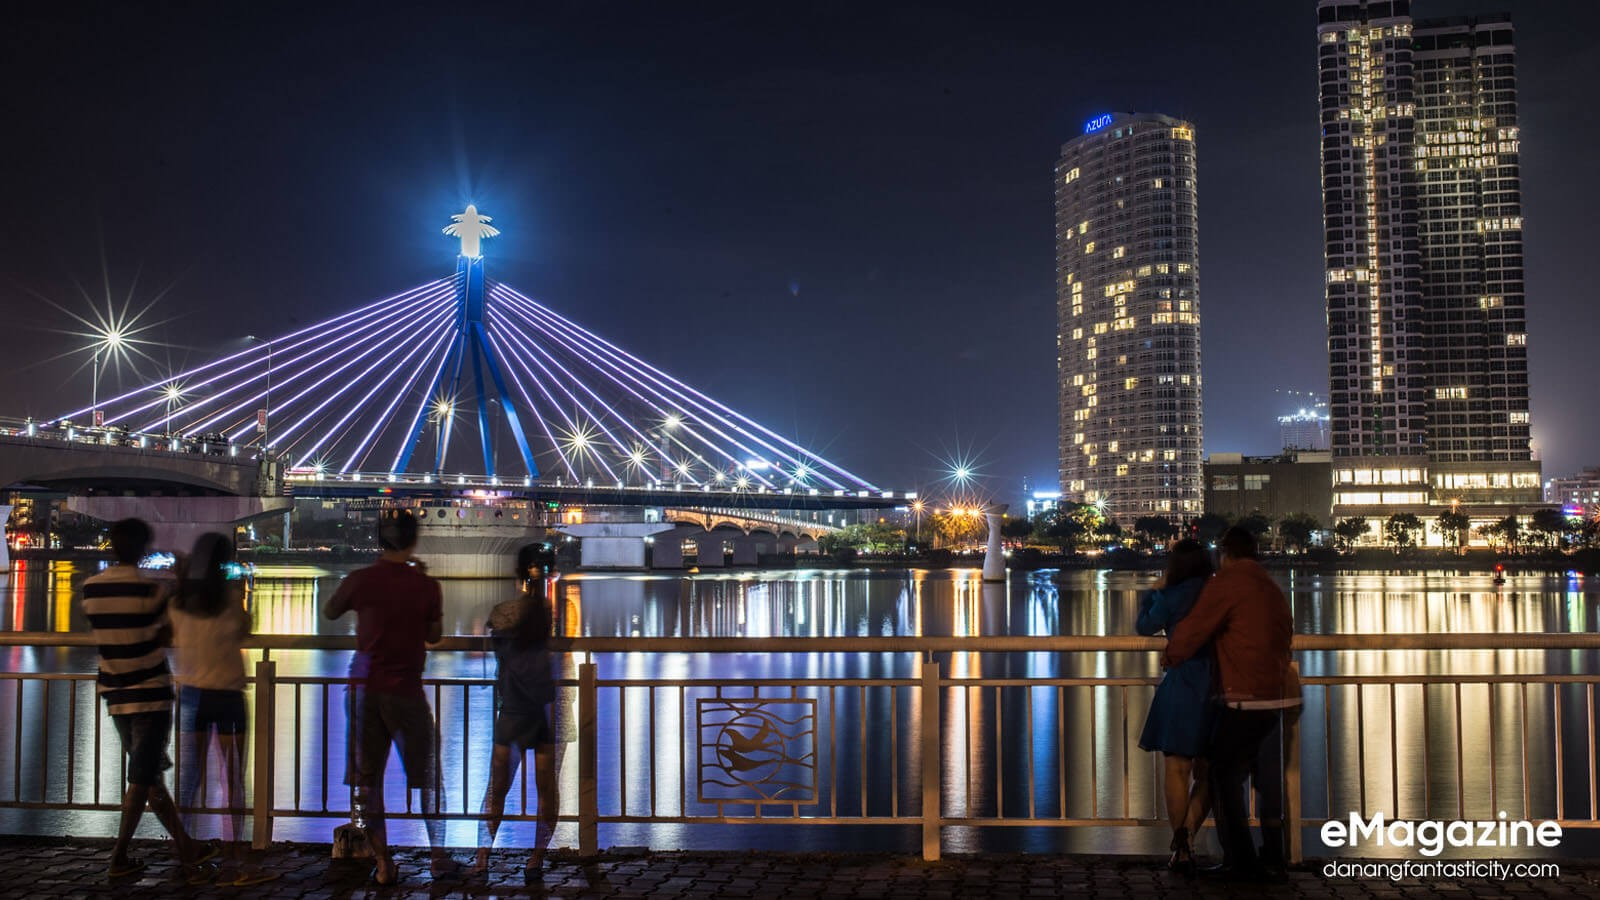 The dazzling beauty of Han River Bridge under city lights-vẻ đẹp của cầu sông Hàn vào ban đêm-Han River Bridge - DN residence's pride